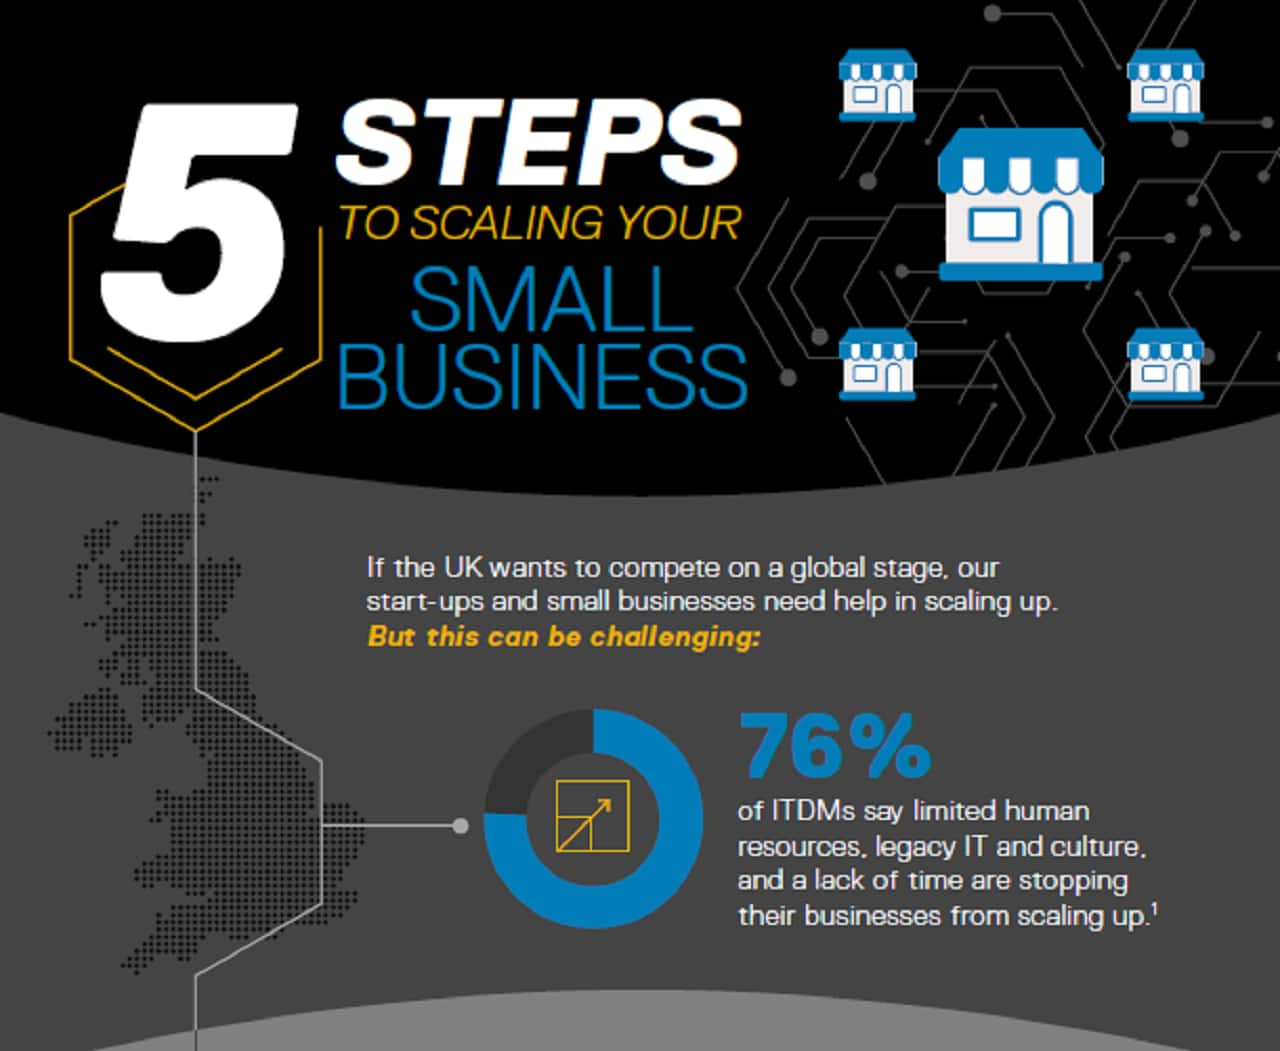 dell small business advisor dell uk5 steps to scaling your small business